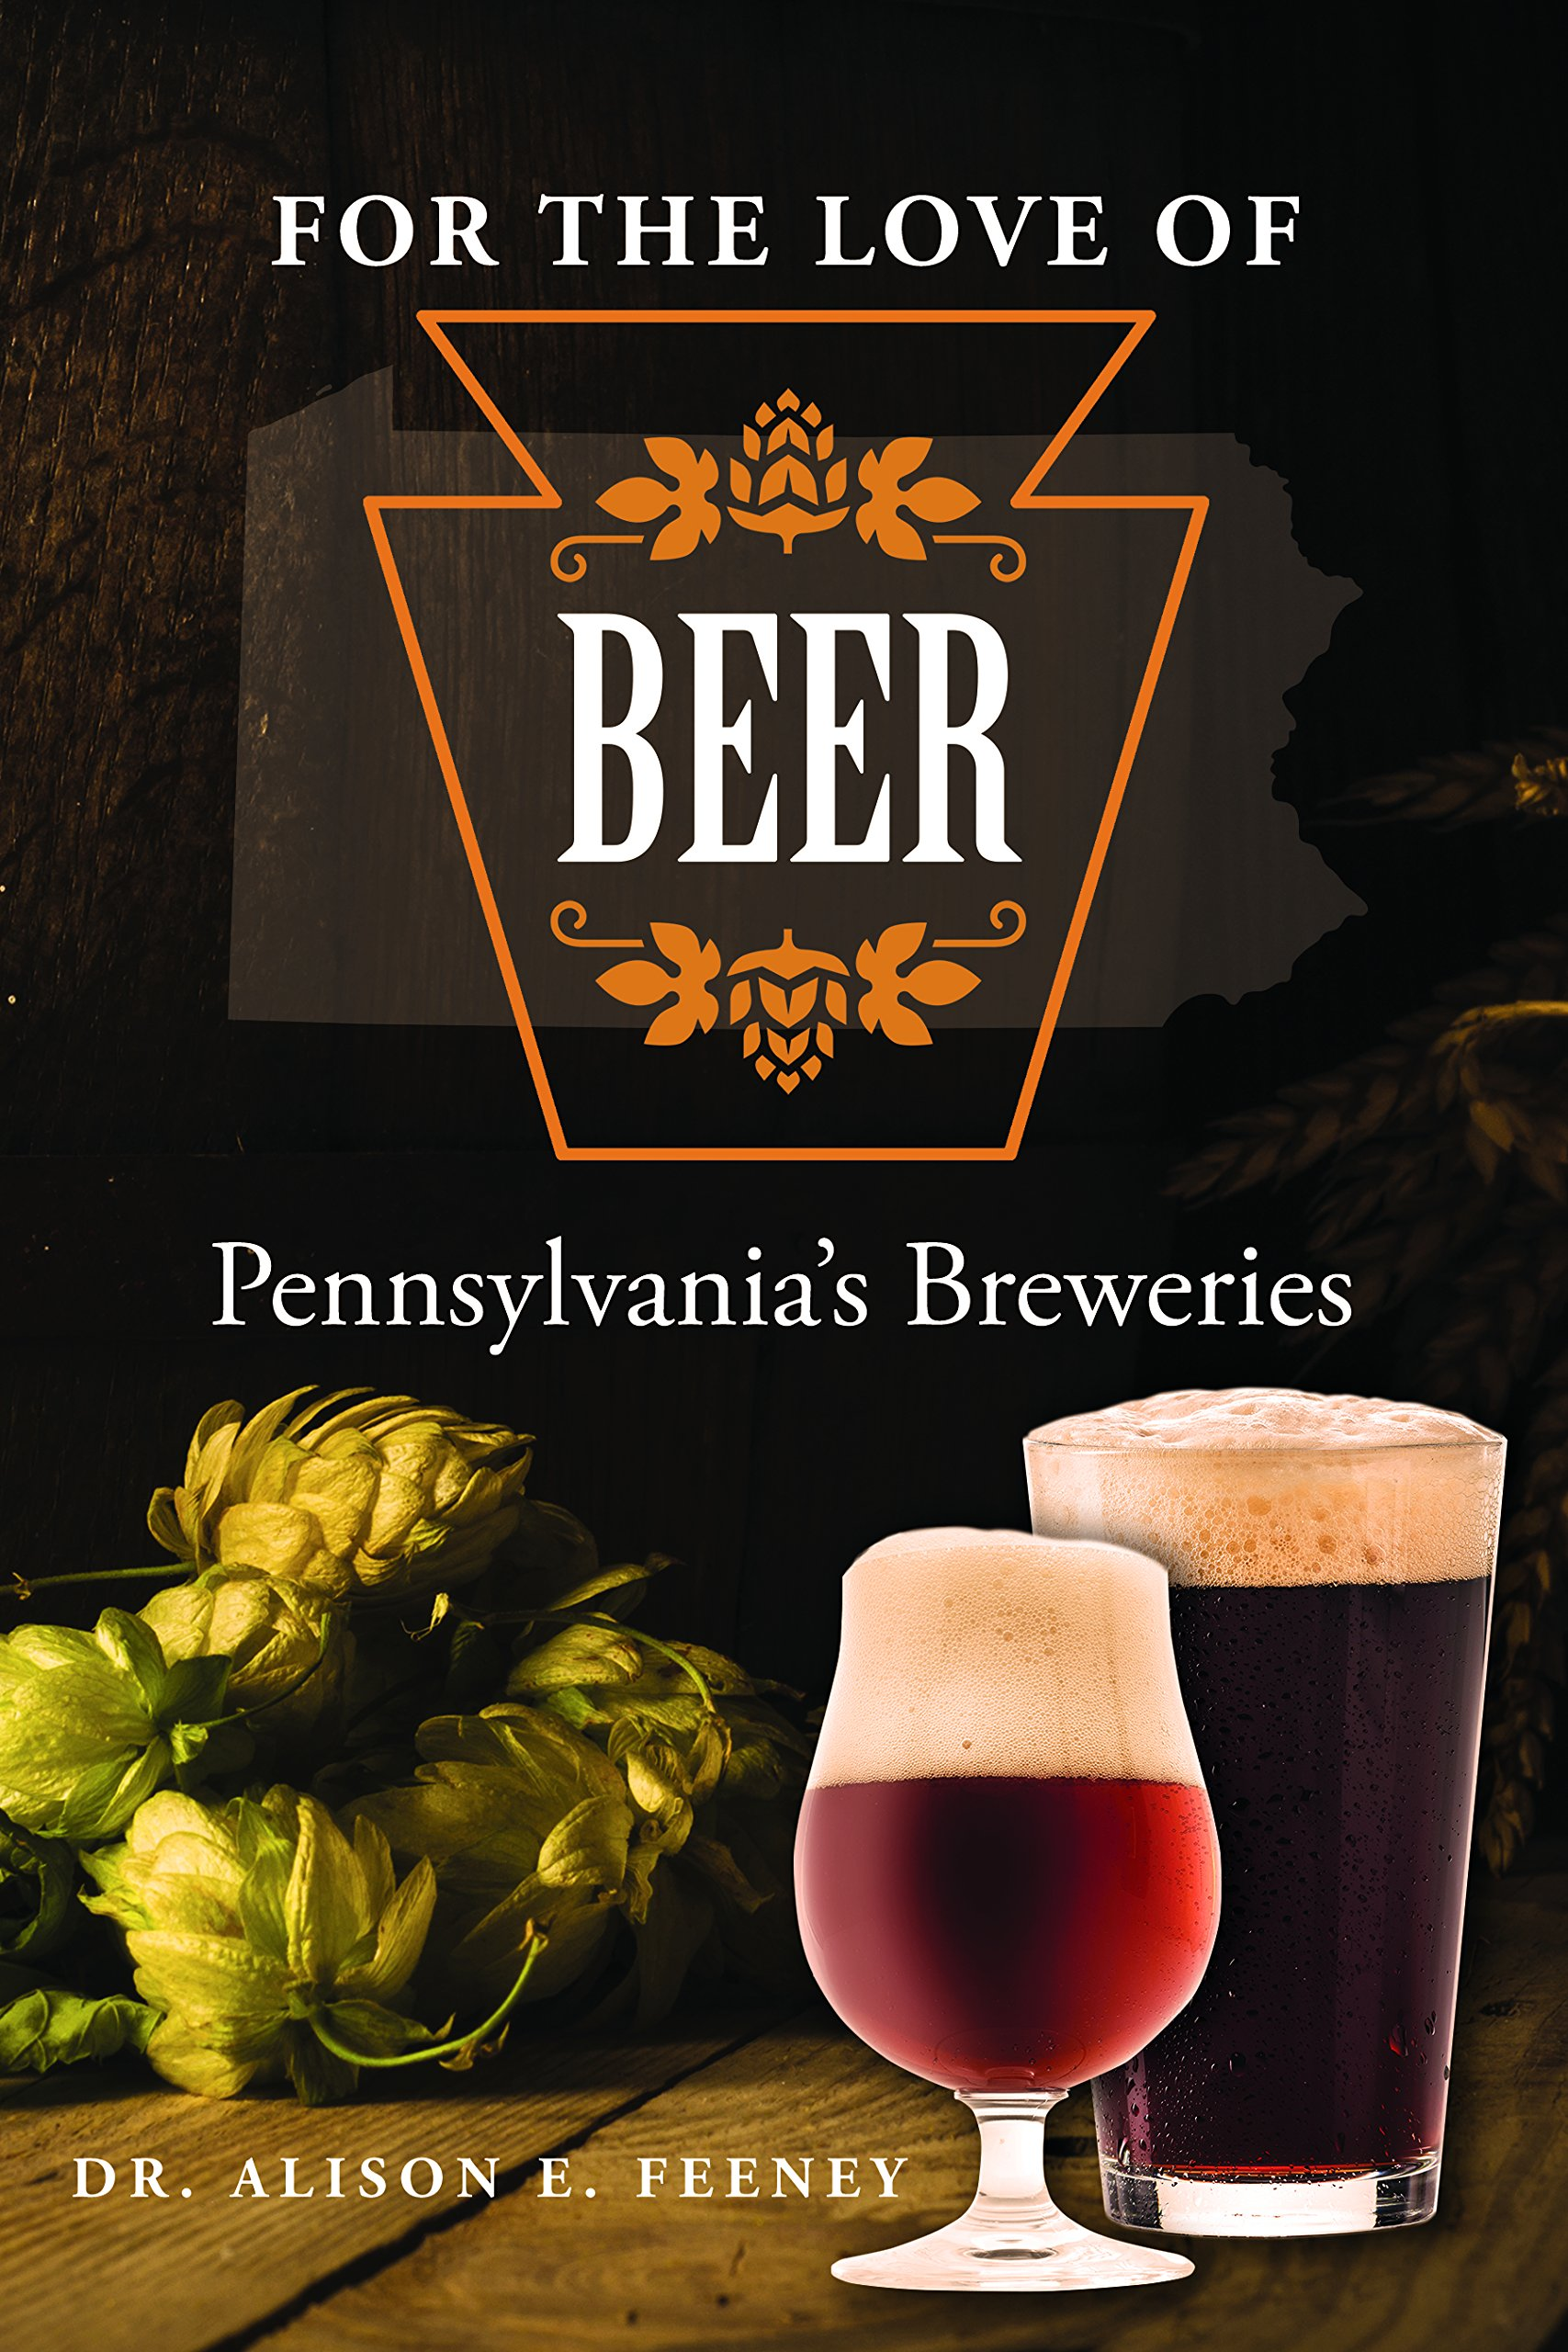 For the Love of Beer: Pennsylvania's Breweries by Atlantic Publishing Group, Inc.